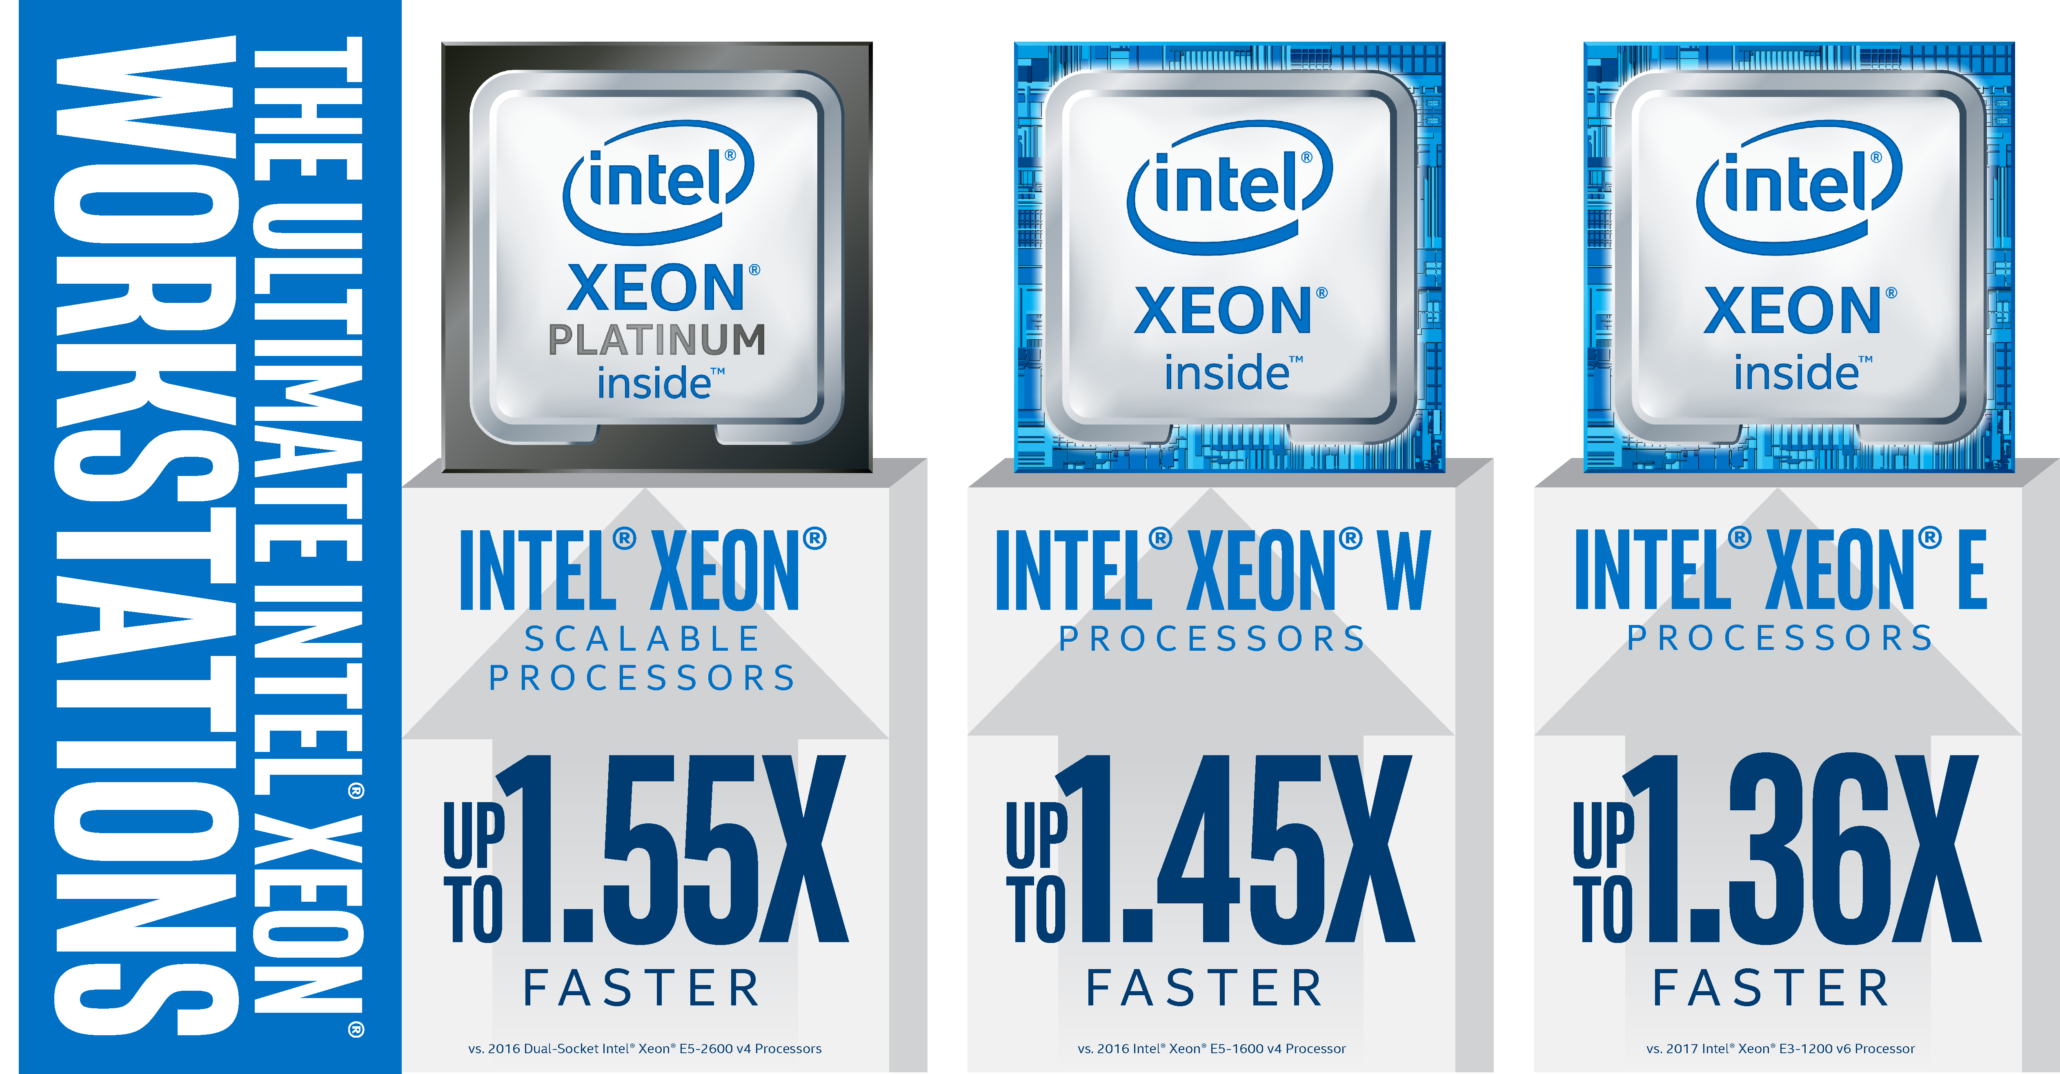 ultimate-intel-workstations-xeon-portfolio-2060x1074